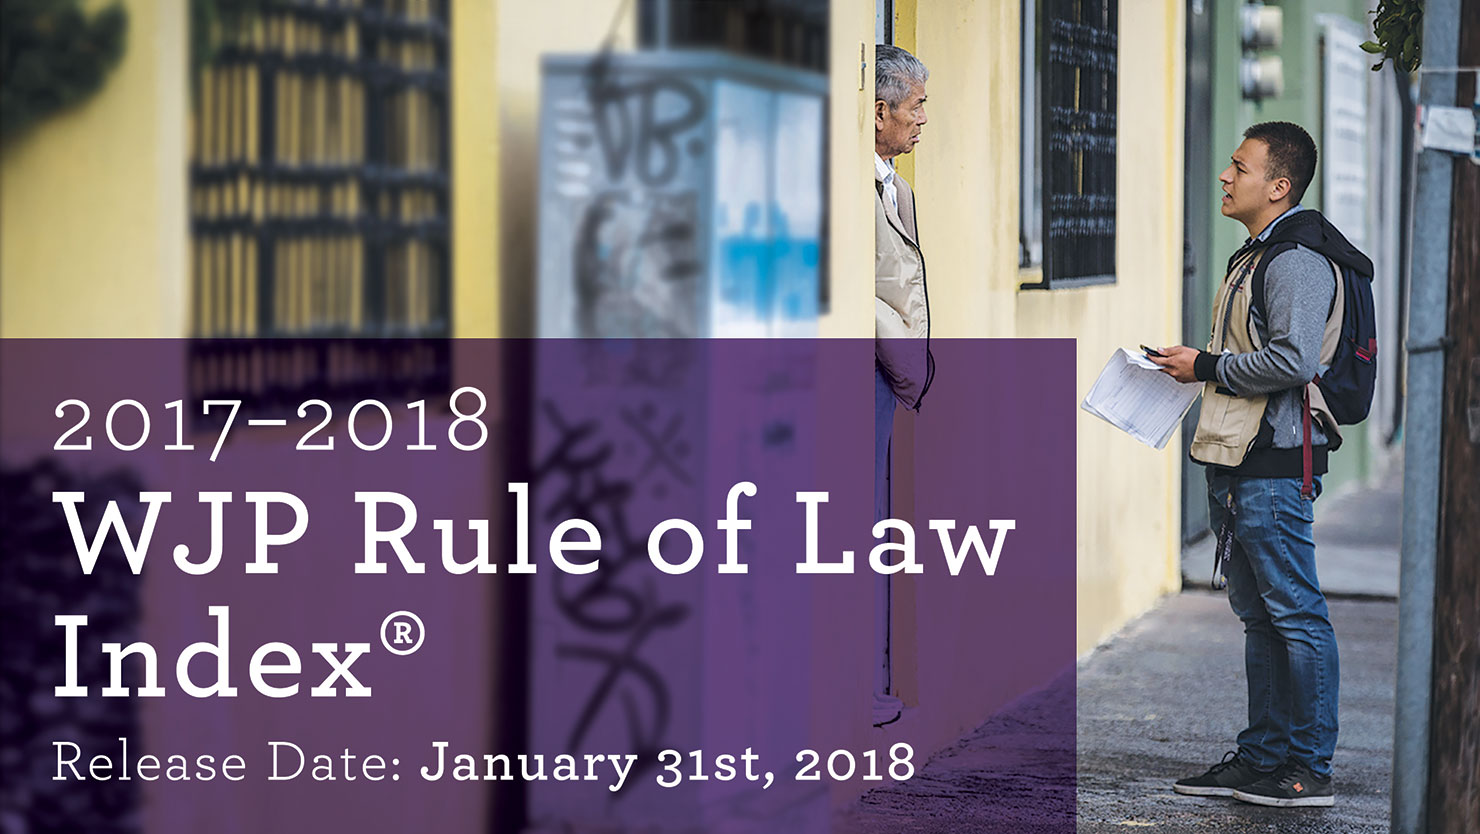 2017-2018 WJP Rule of Law Index